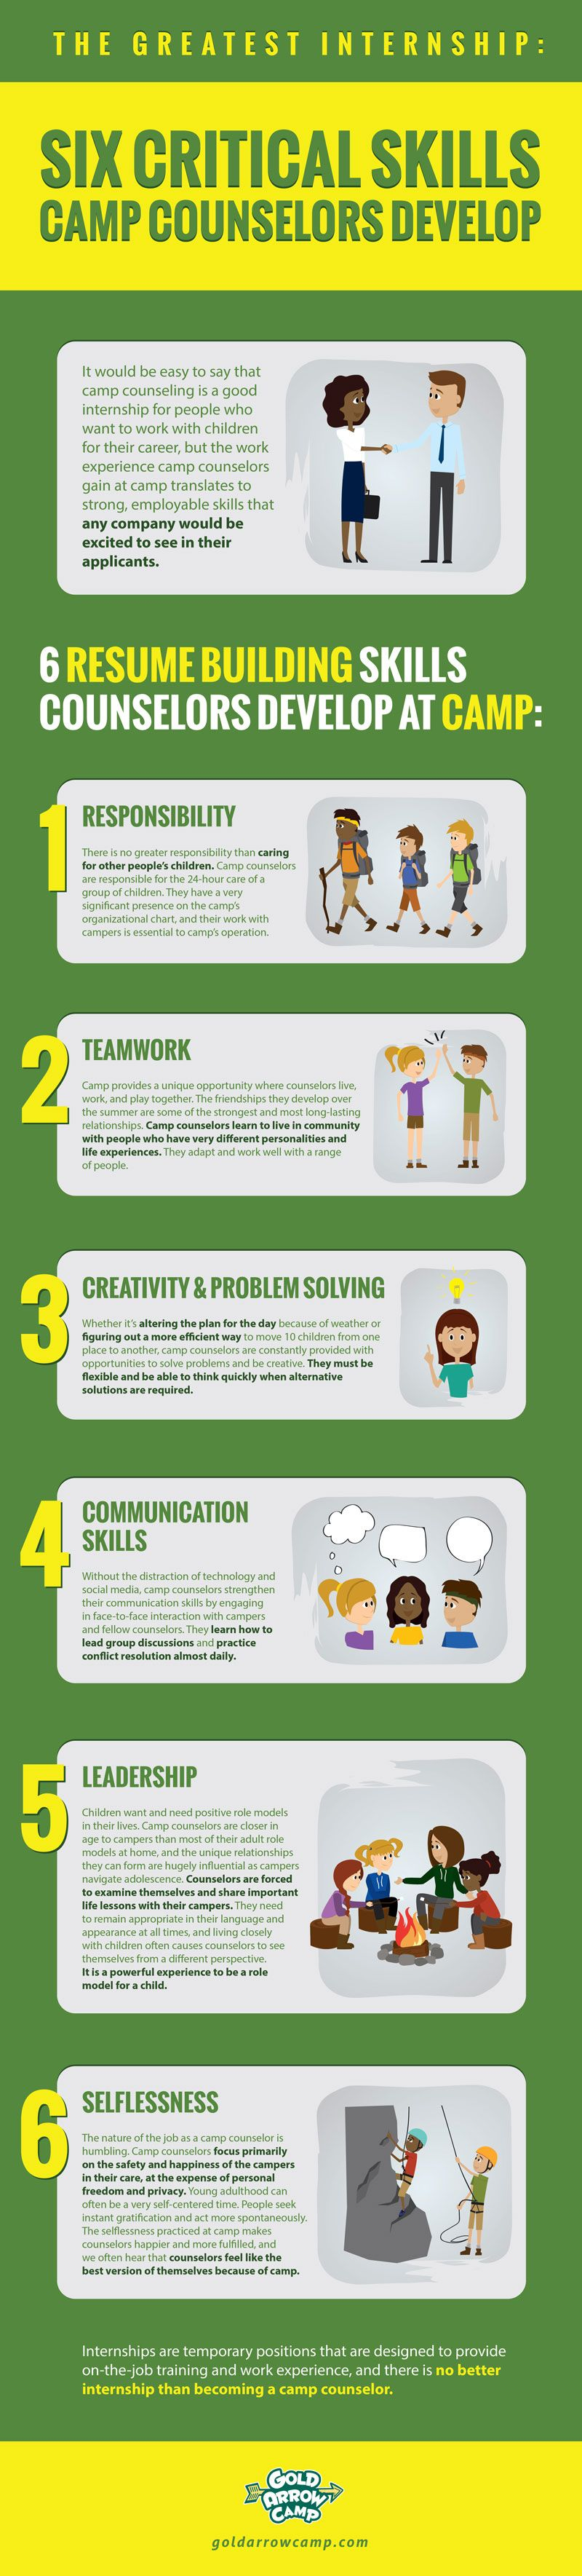 The Greatest Internship 6 Critical Skills Counselors Develop At Camp Sunshine Parenting Summer Camp Activities Camp Counselor Camp Sunshine